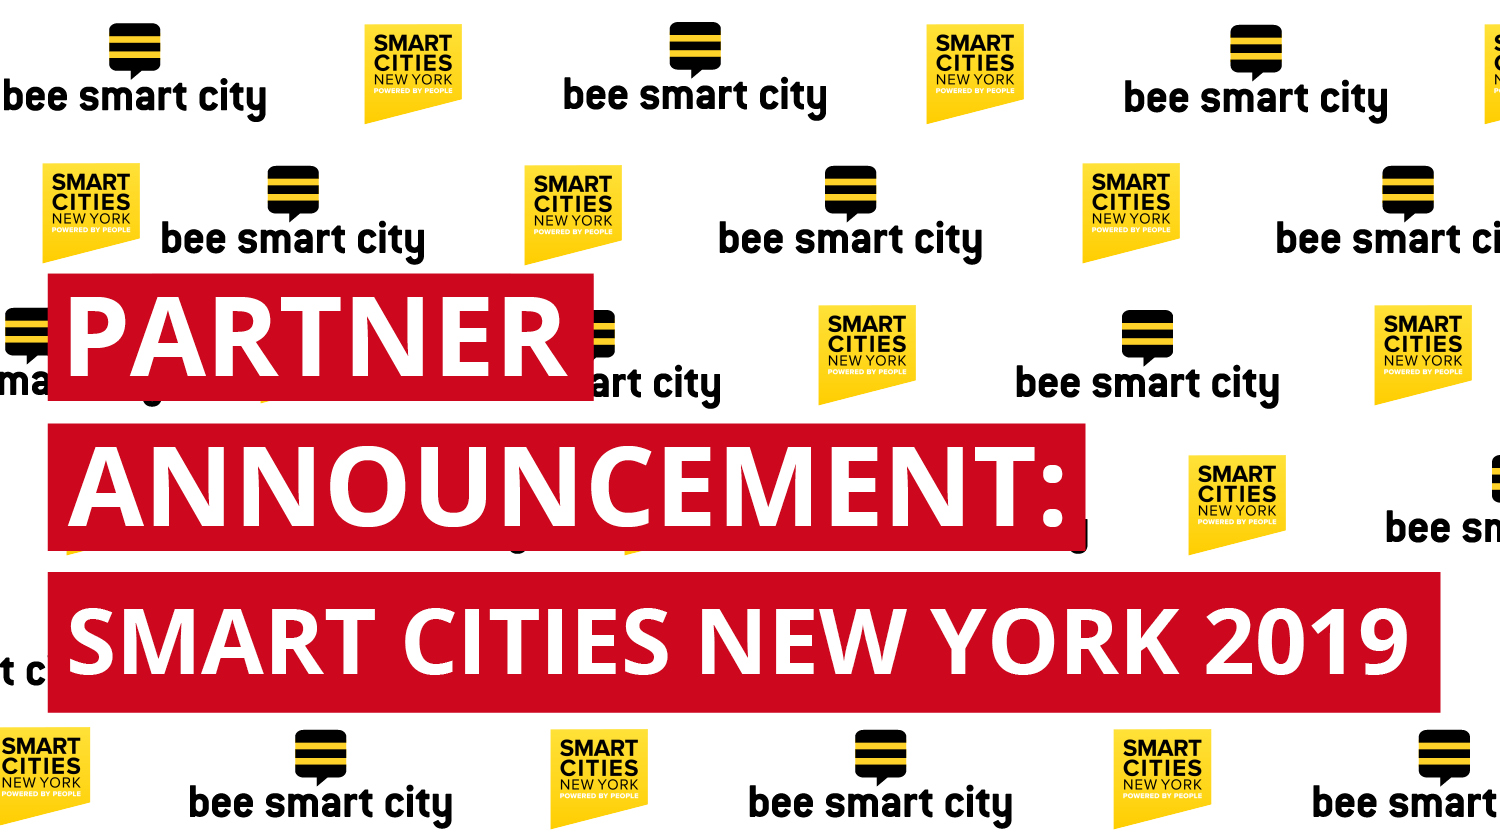 partnership smart cities new york bee smart city